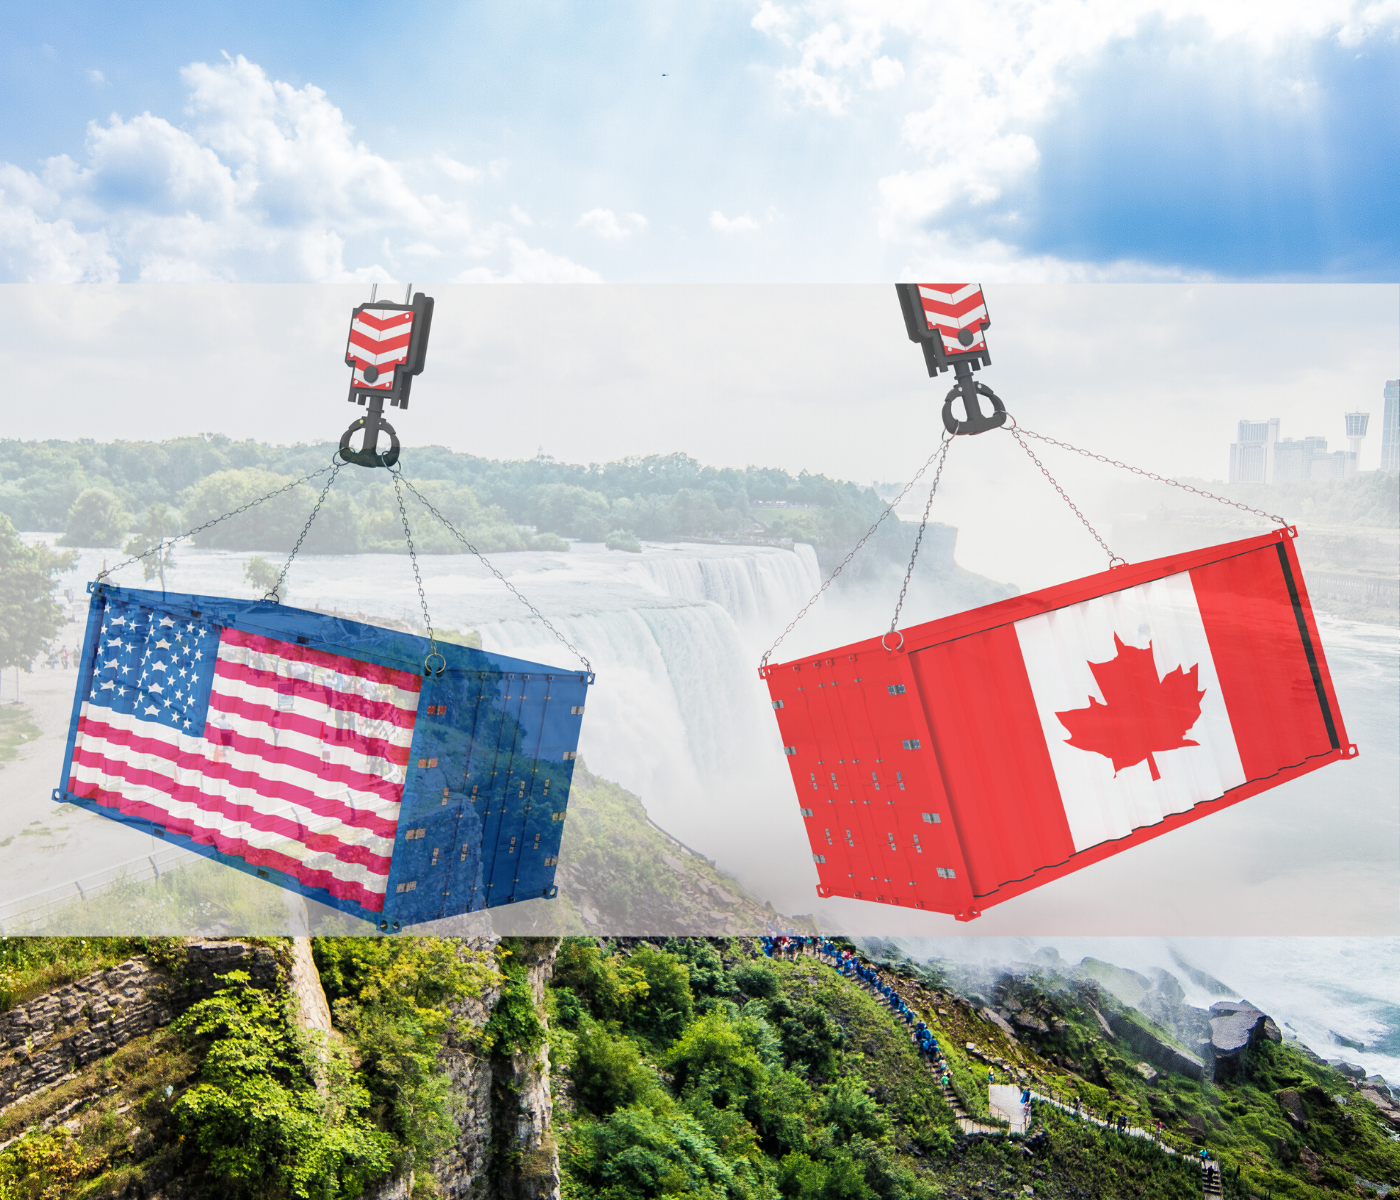 US Limited Liability Company (LLC) in Canada — Registration and Income Taxes